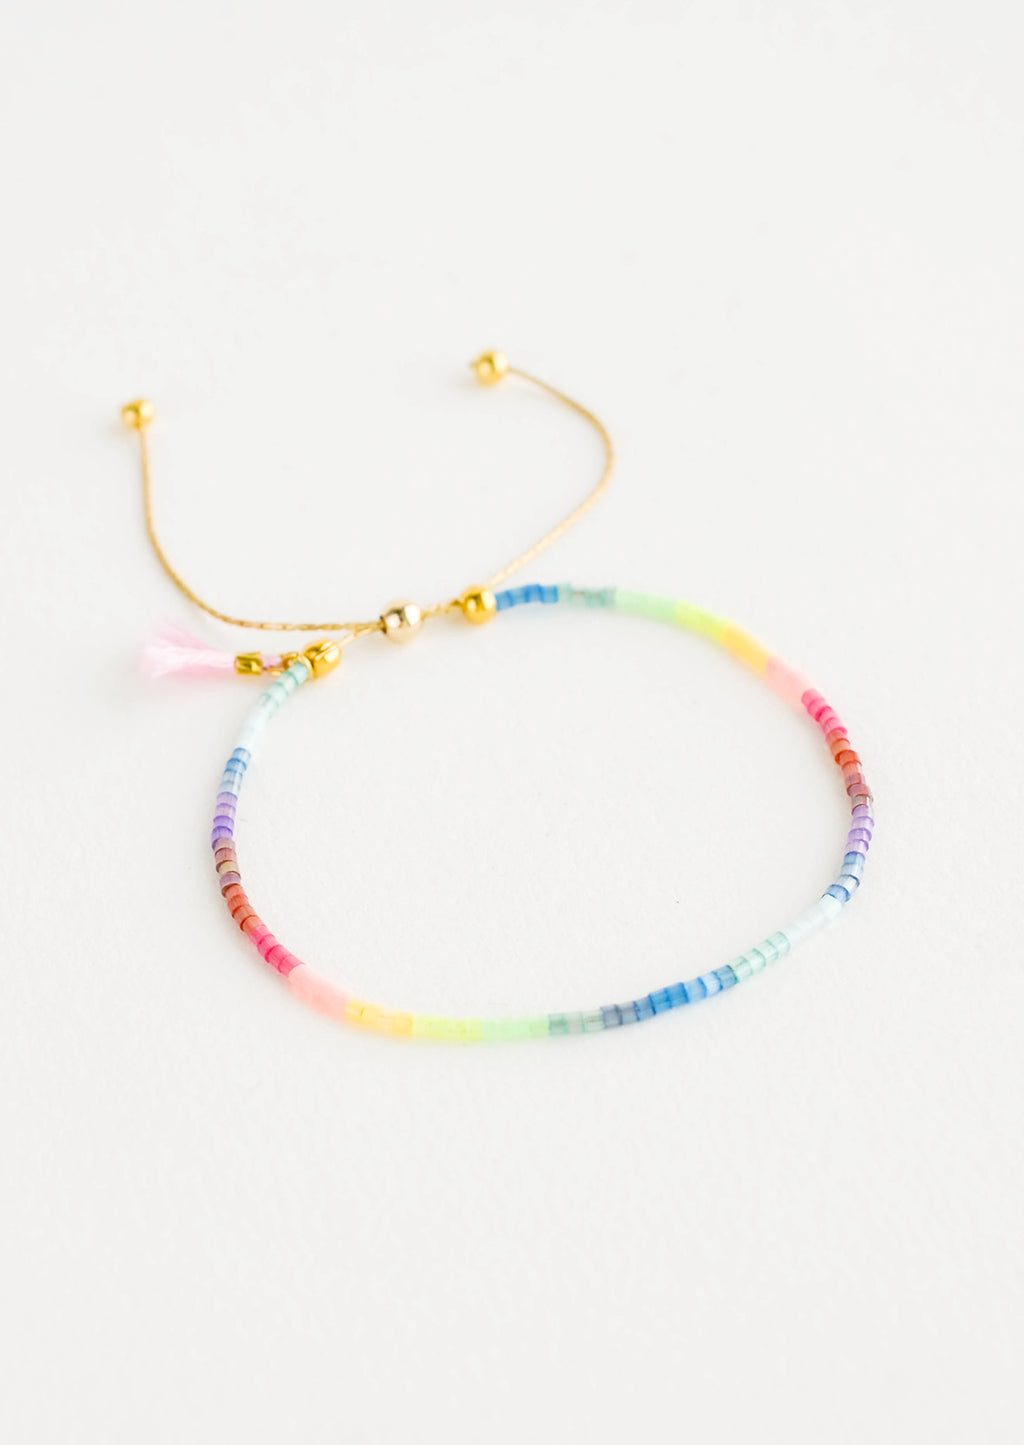 Rainbow Multi: Delicate bracelet of rainbow colored glass beads on a thin gold chain.